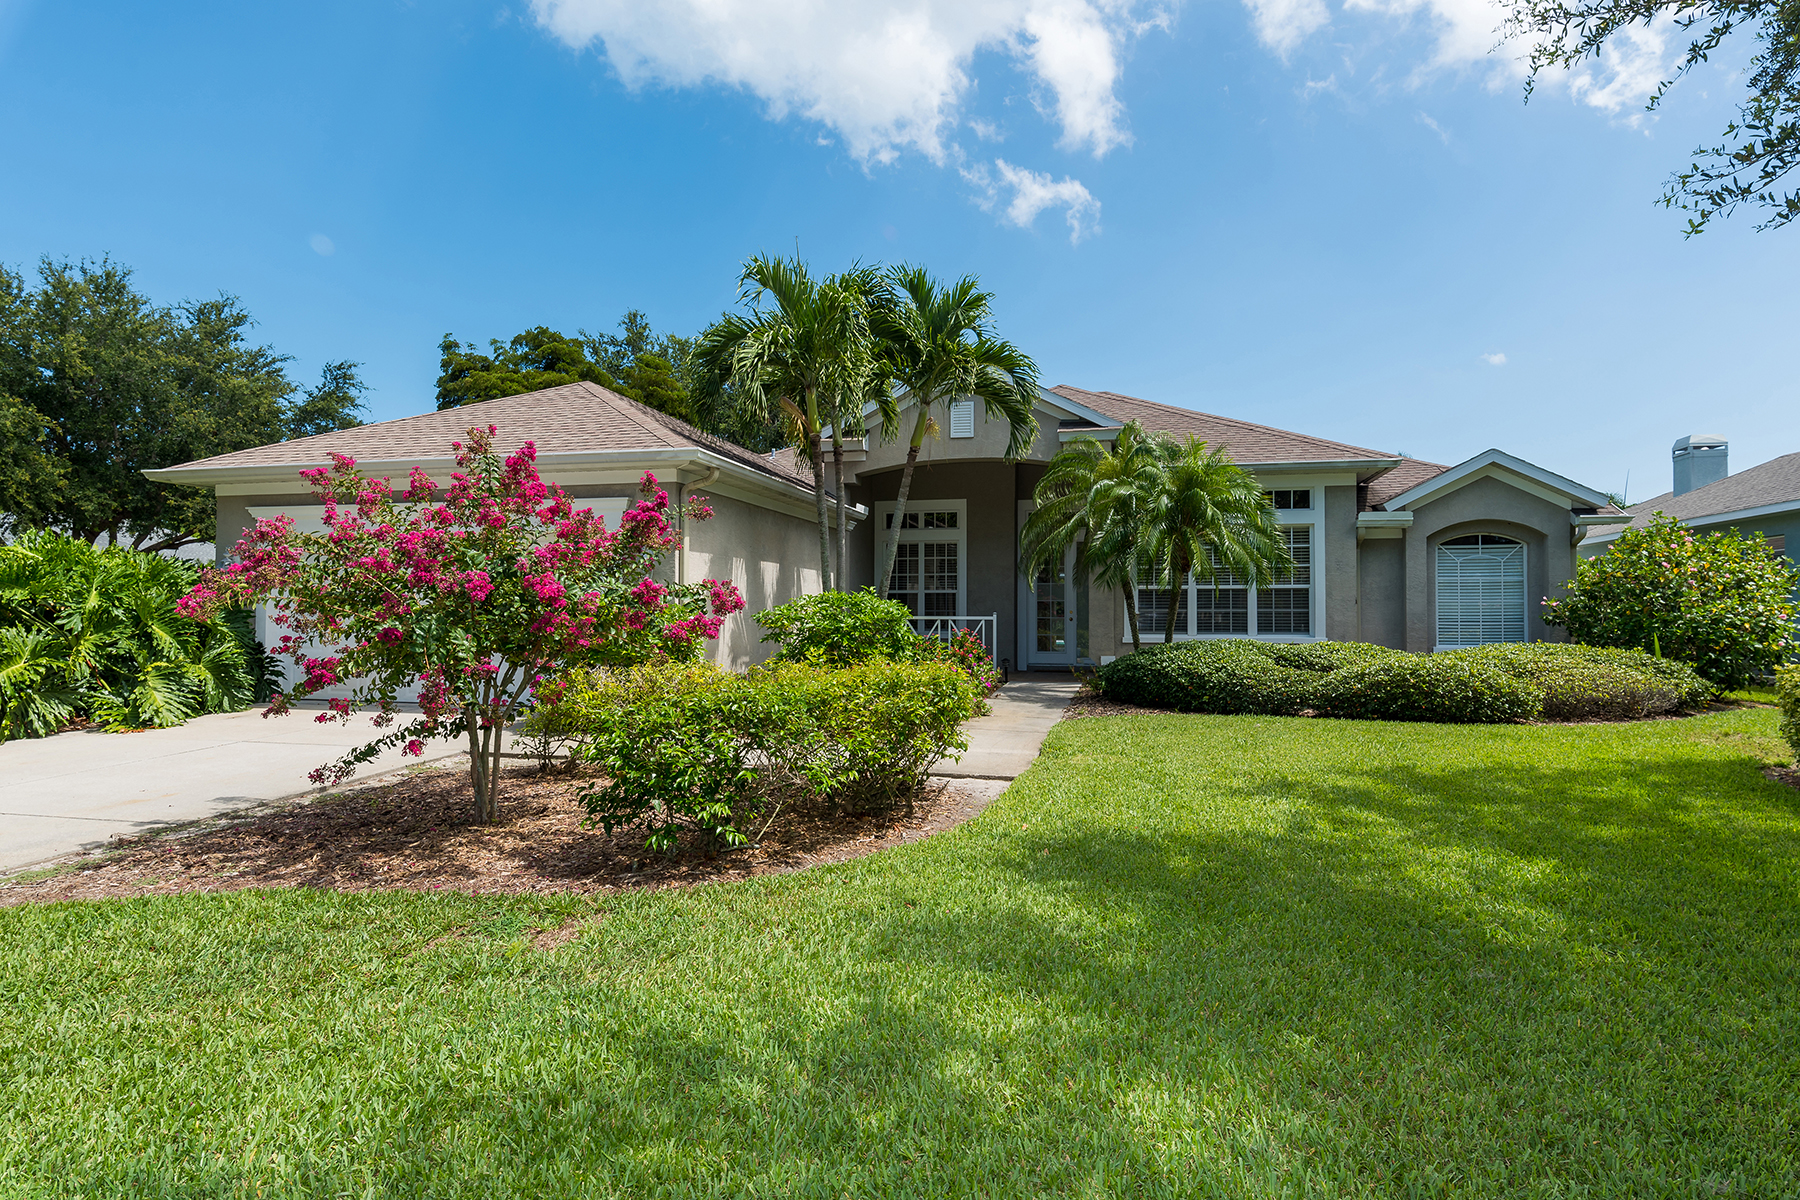 Single Family Home for Sale at HAWTHORN PARK 1023 92nd St NW Bradenton, Florida, 34209 United States